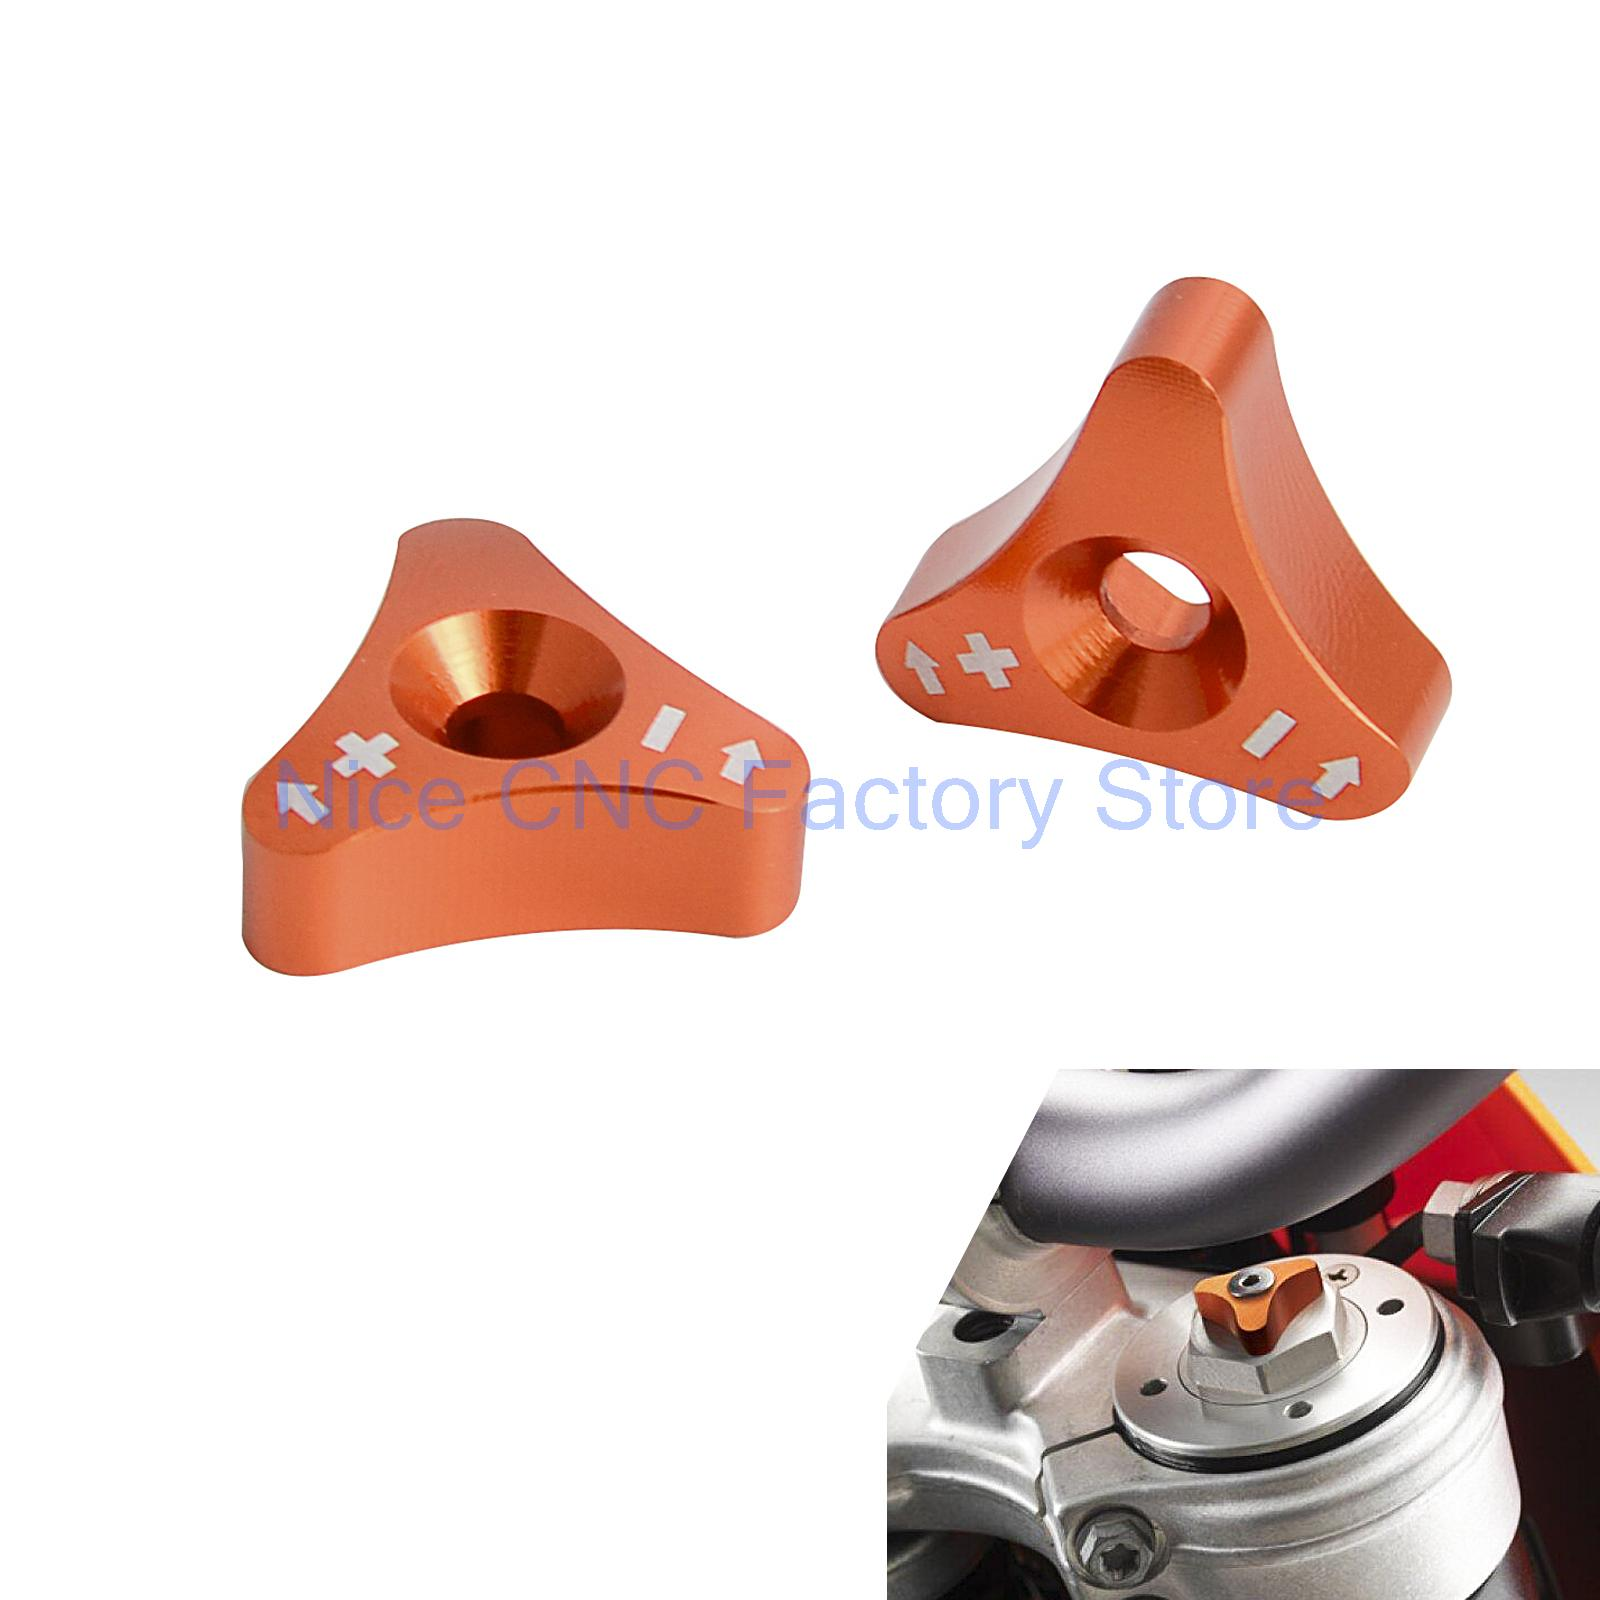 NICECNC Front Shock Absorber SXS Knob adjuster Bolt For 48mm Fork KTM 690 Duke Supermoto Enduro 250 350 450 SX SXF EXC Husqvarna motorcycle front rider seat leather cover for ktm 125 200 390 duke